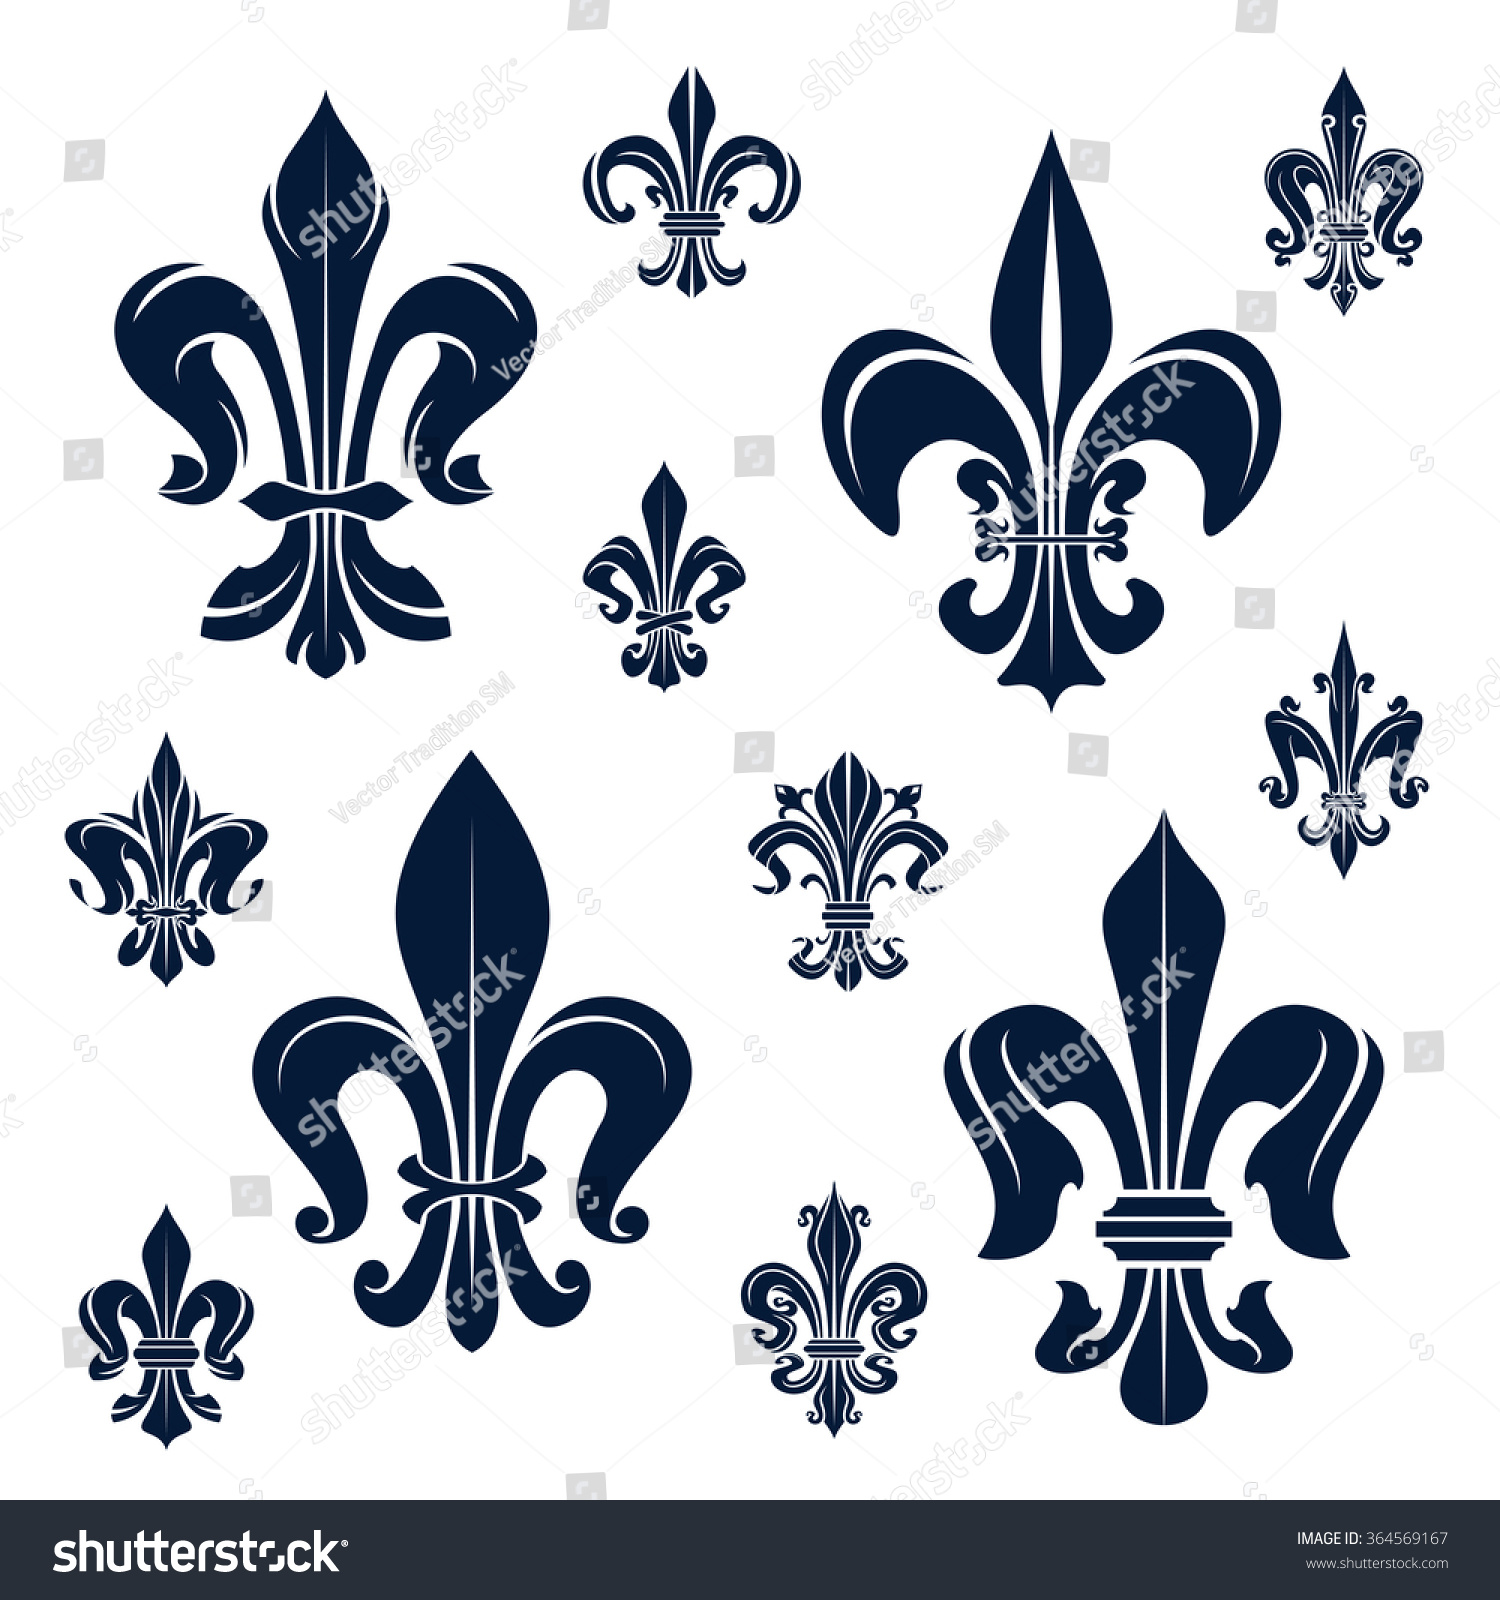 Royalty free french royal fleur de lis dark blue 364569167 stock french royal fleur de lis dark blue heraldic symbols with ornamental compositions of victorian biocorpaavc Gallery